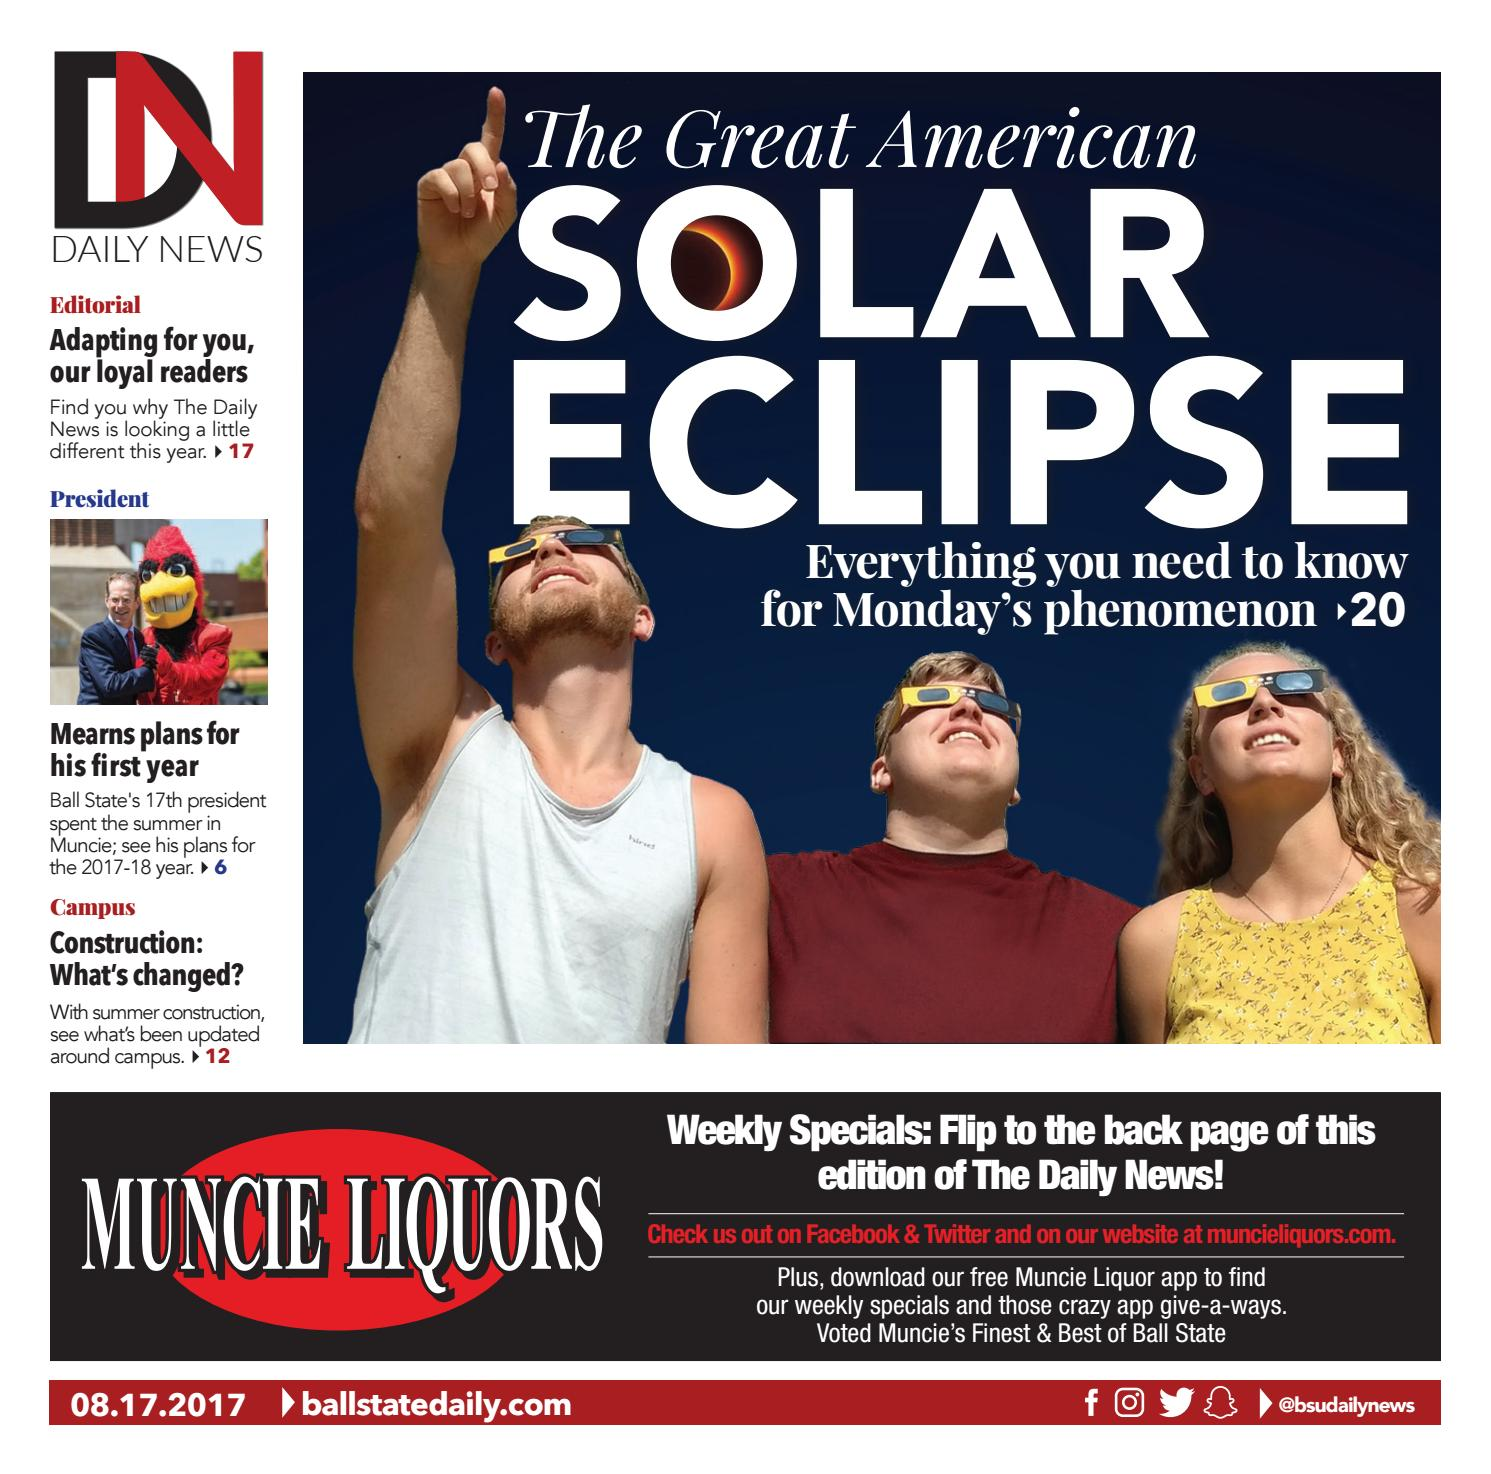 bb096aa07 Roll Call 2017 by The Ball State Daily News - issuu